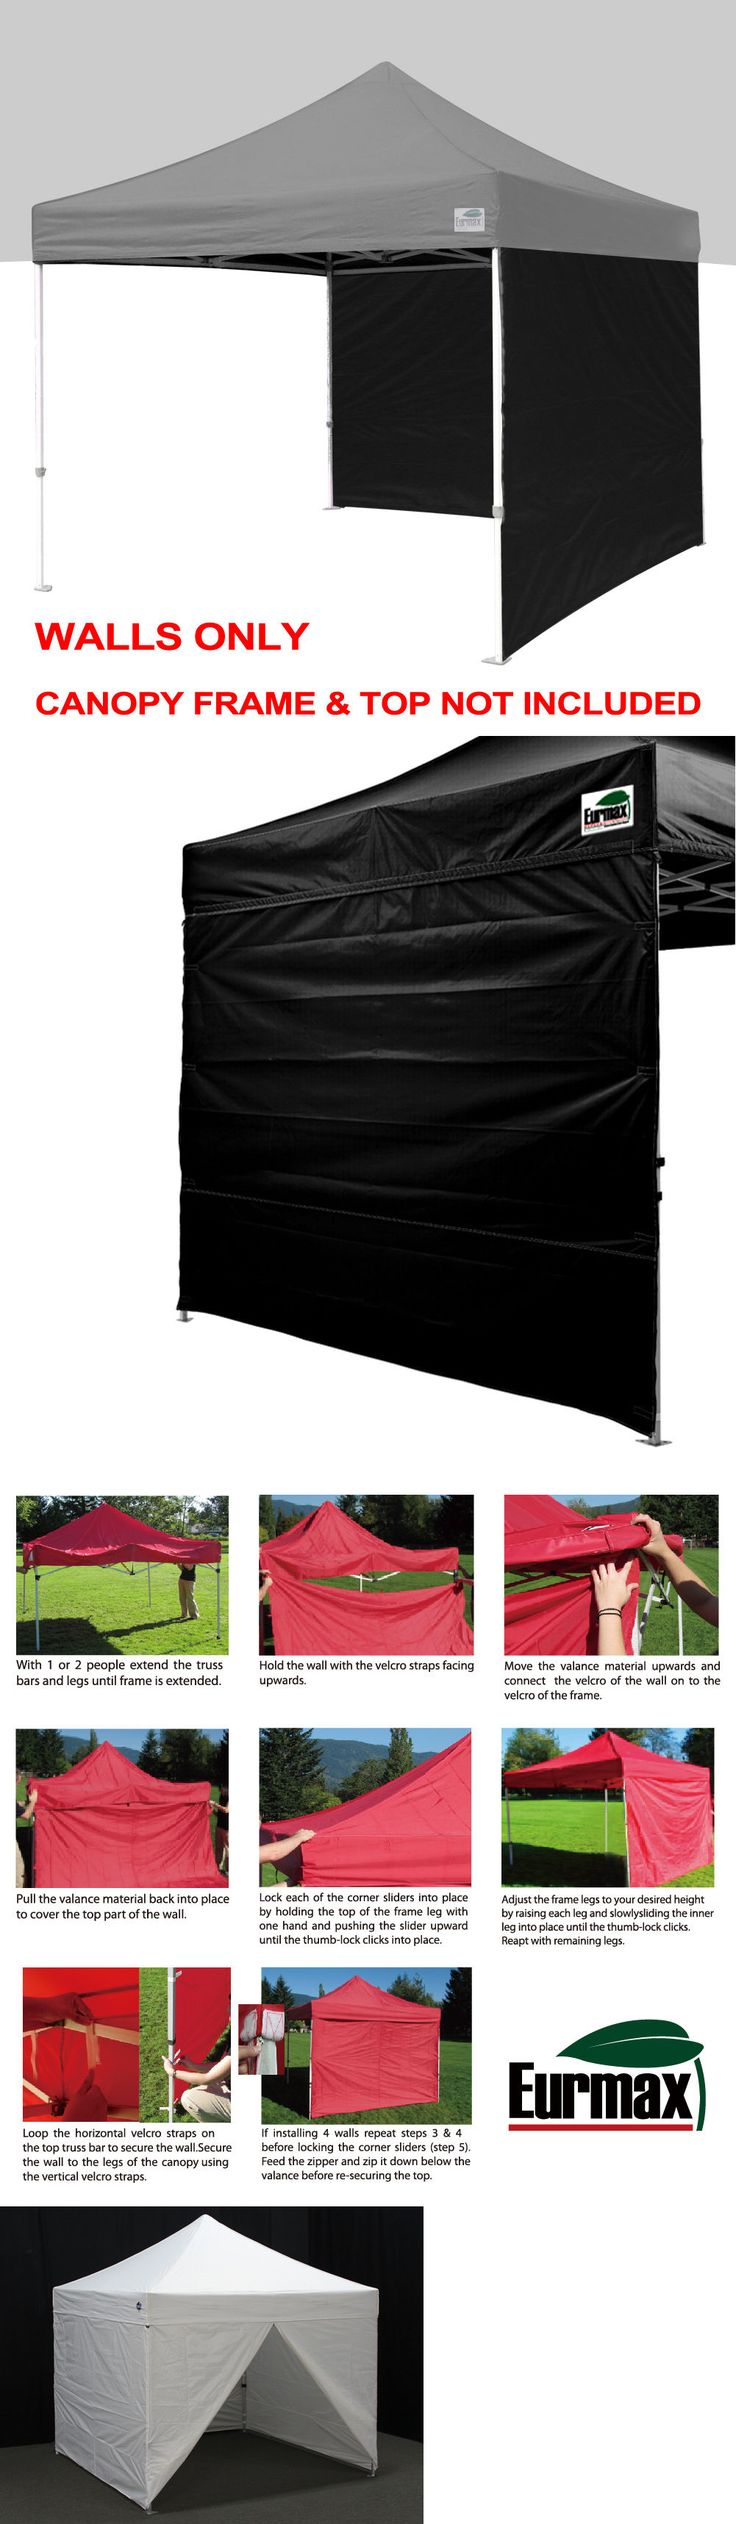 Tent and Canopy Accessories 36120: 2Pcs Side Walls Panels For 5X5 10X10 10X15 10X20 Ez Pop Up Canopy Outdoor Tent -> BUY IT NOW ONLY: $45.95 on eBay!